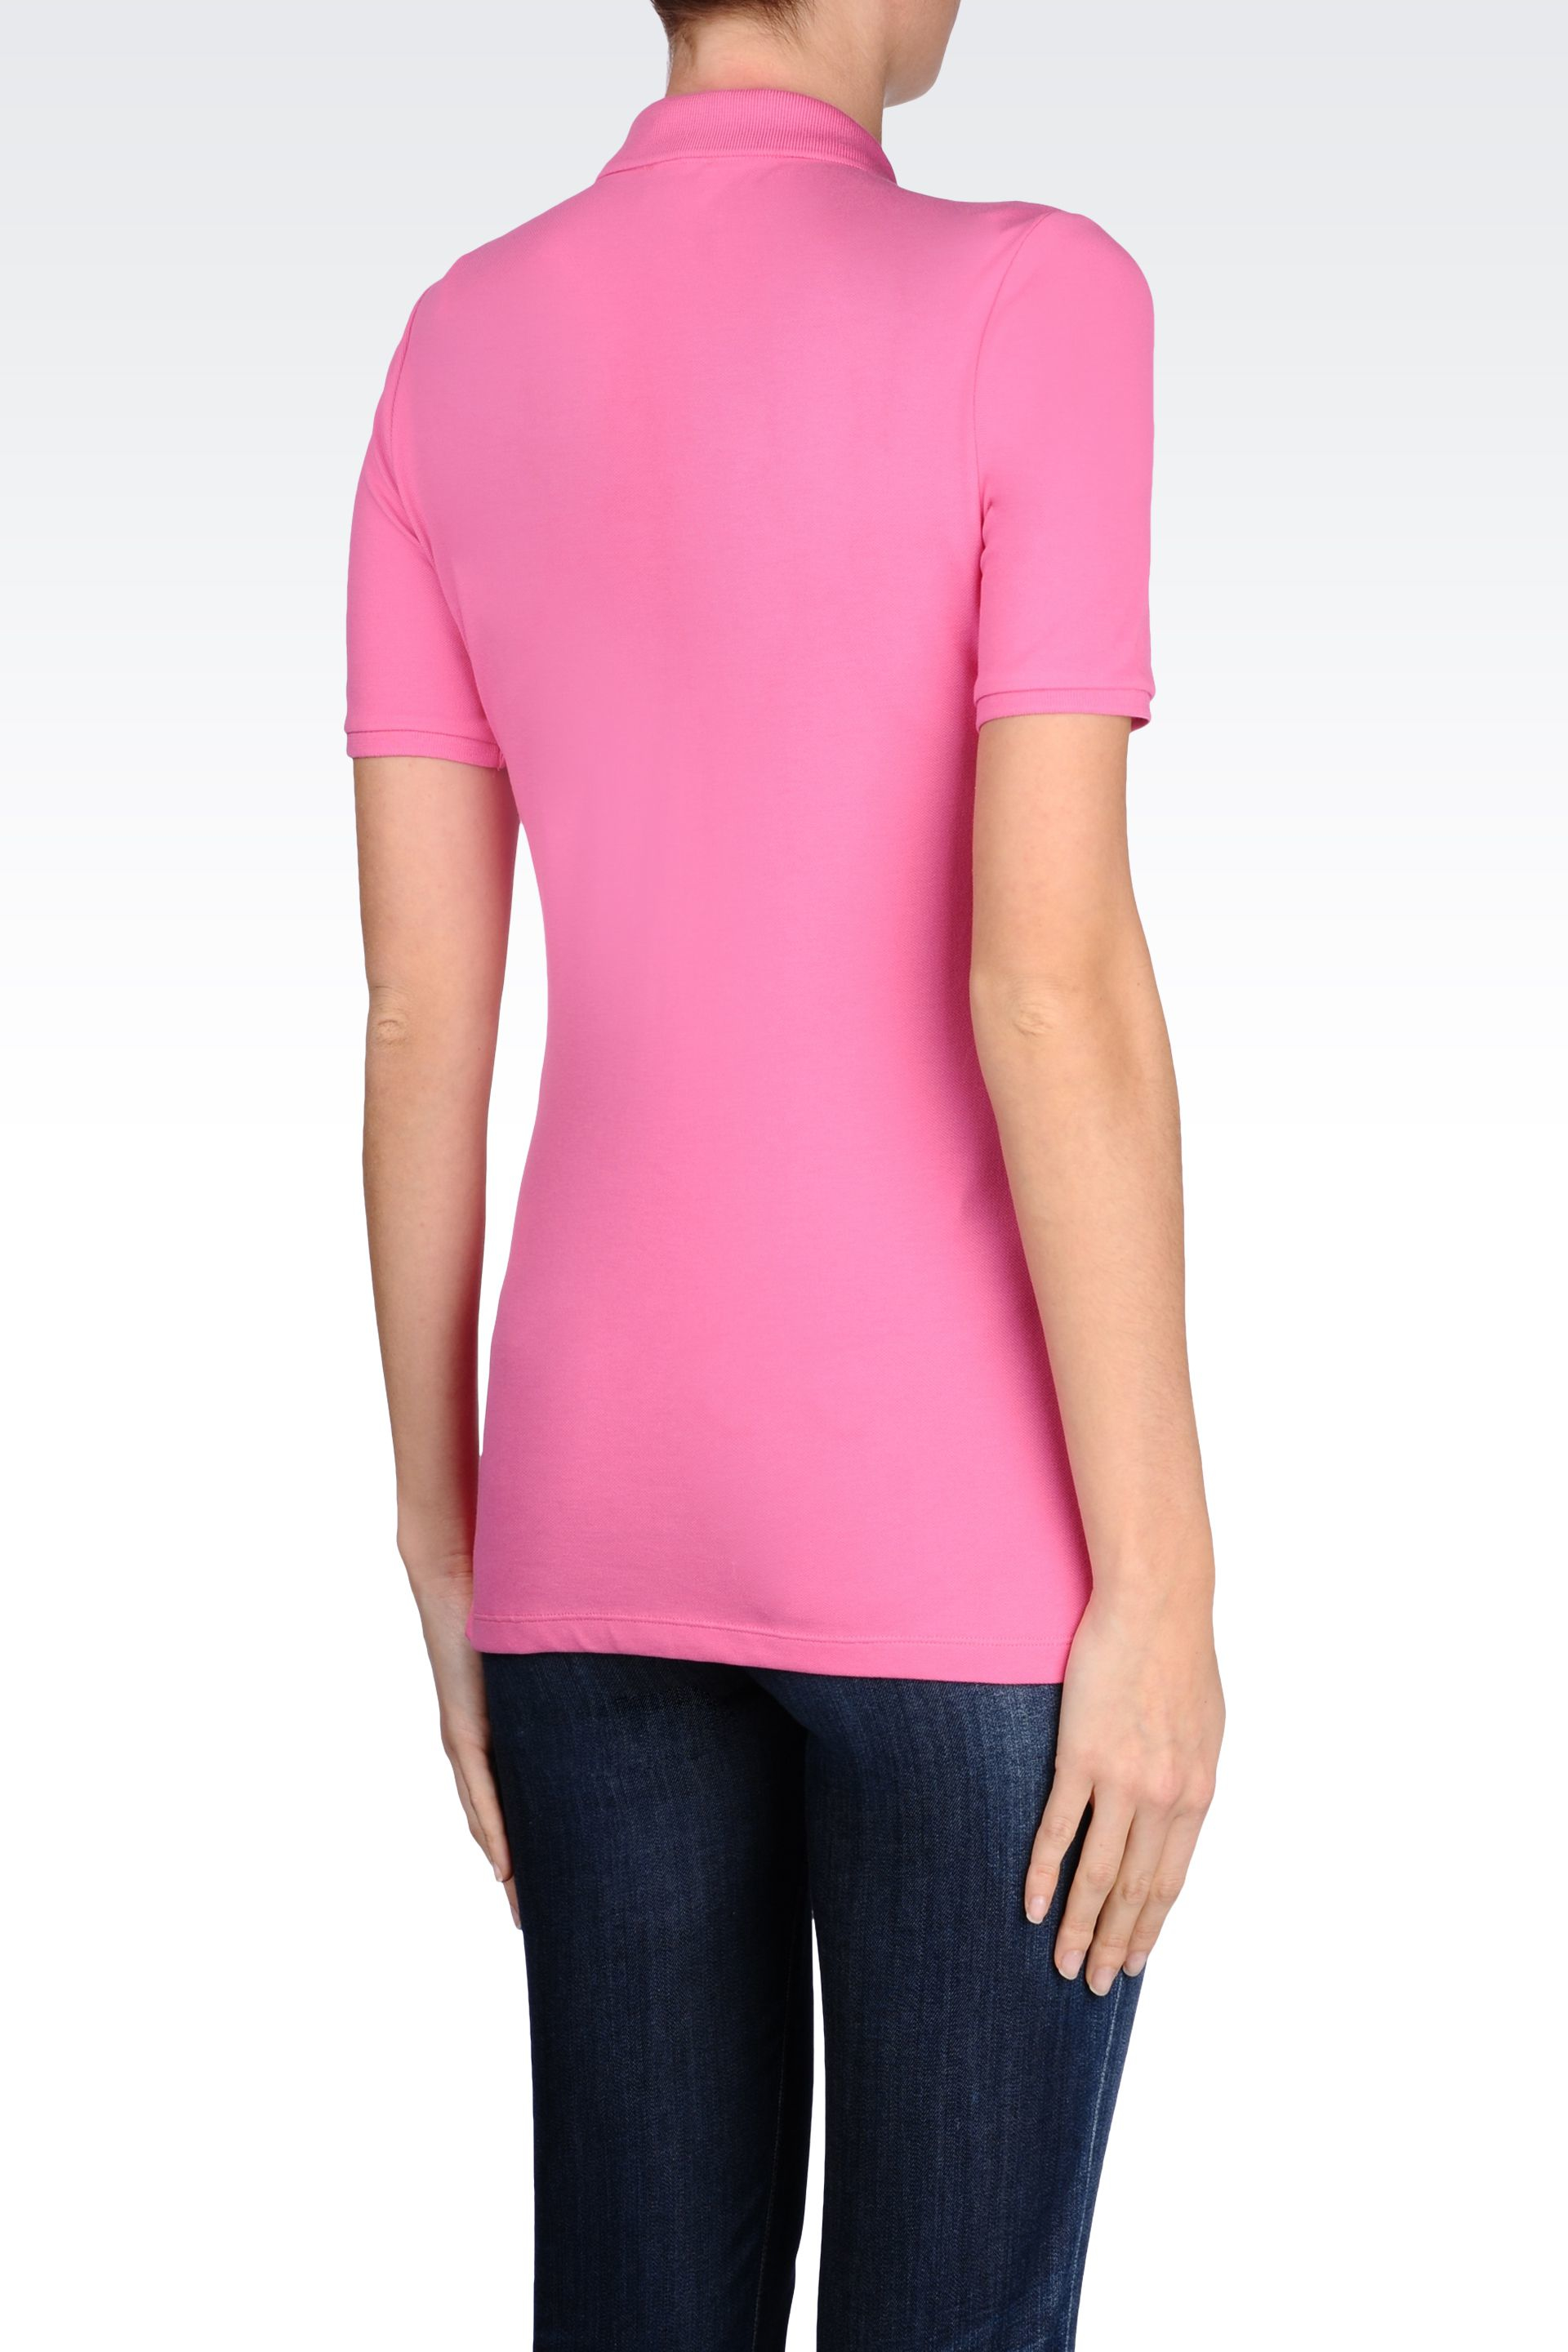 Armani jeans polo shirt in cotton pique in purple fuchsia for Polo shirt and jeans